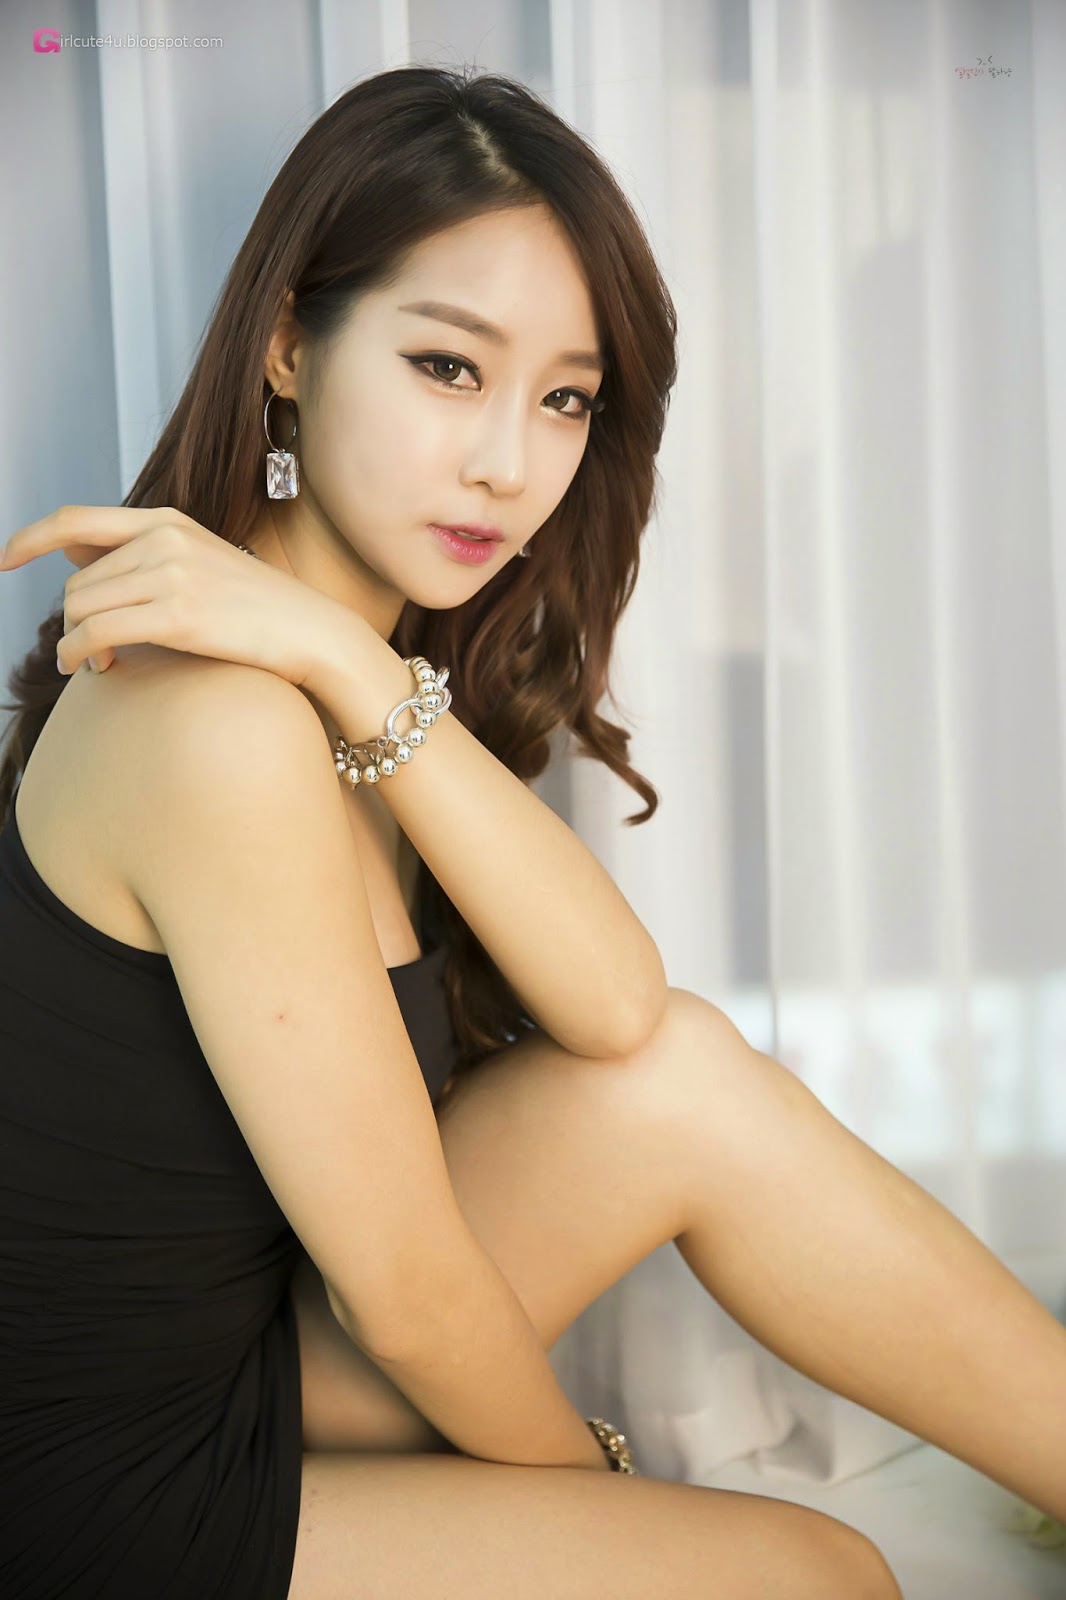 2 Lovely Eun Ji Ye In Studio Photo Shoot - very cute asian girl-girlcute4u.blogspot.com